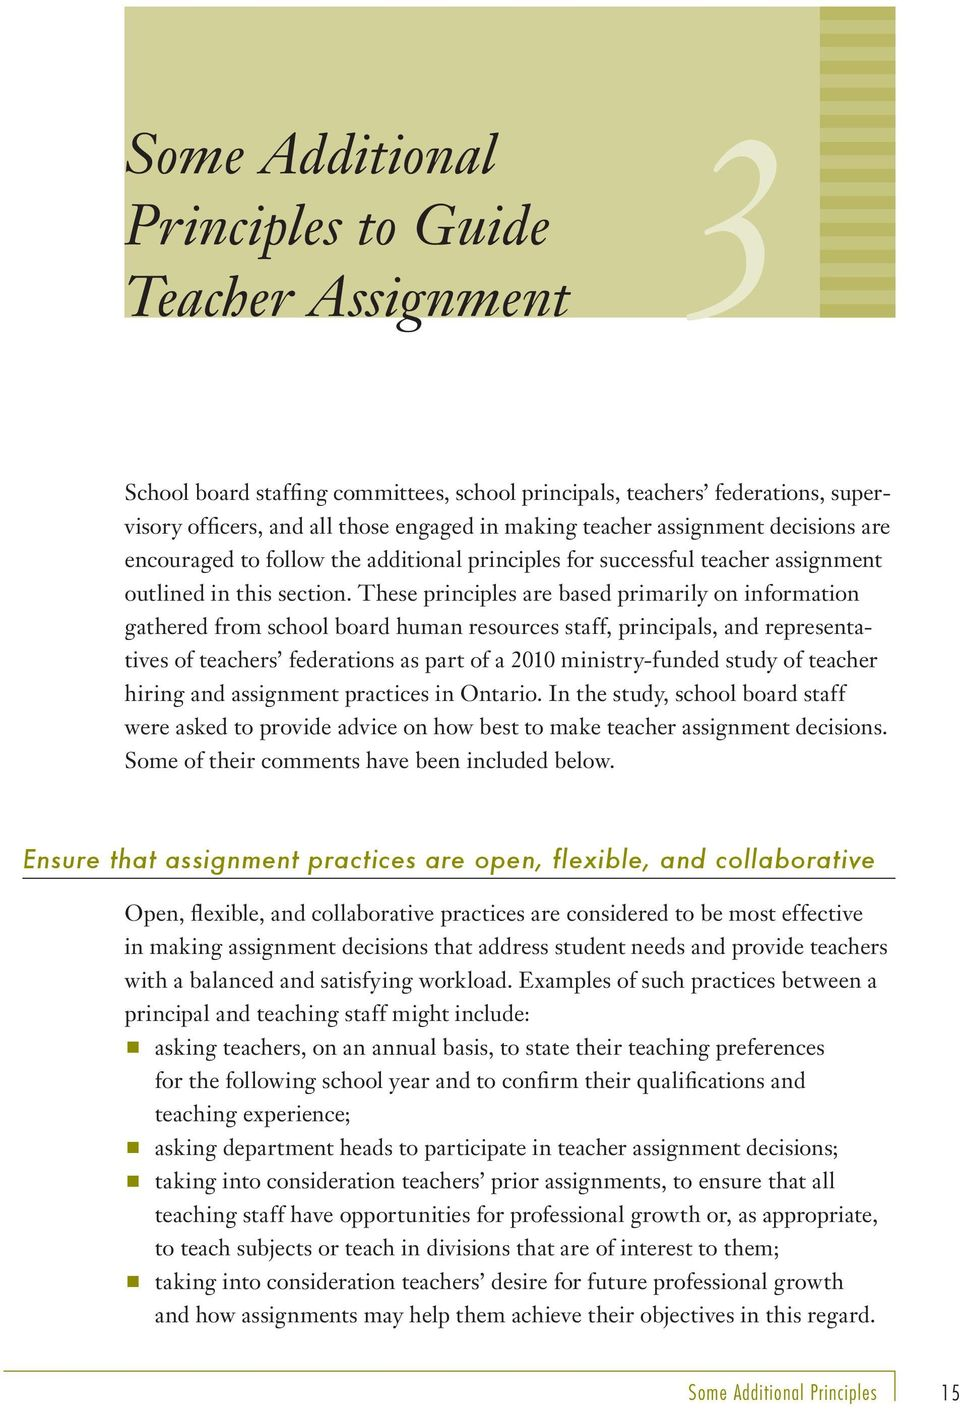 These principles are based primarily on information gathered from school board human resources staff, principals, and representatives of teachers federations as part of a 2010 ministry-funded study